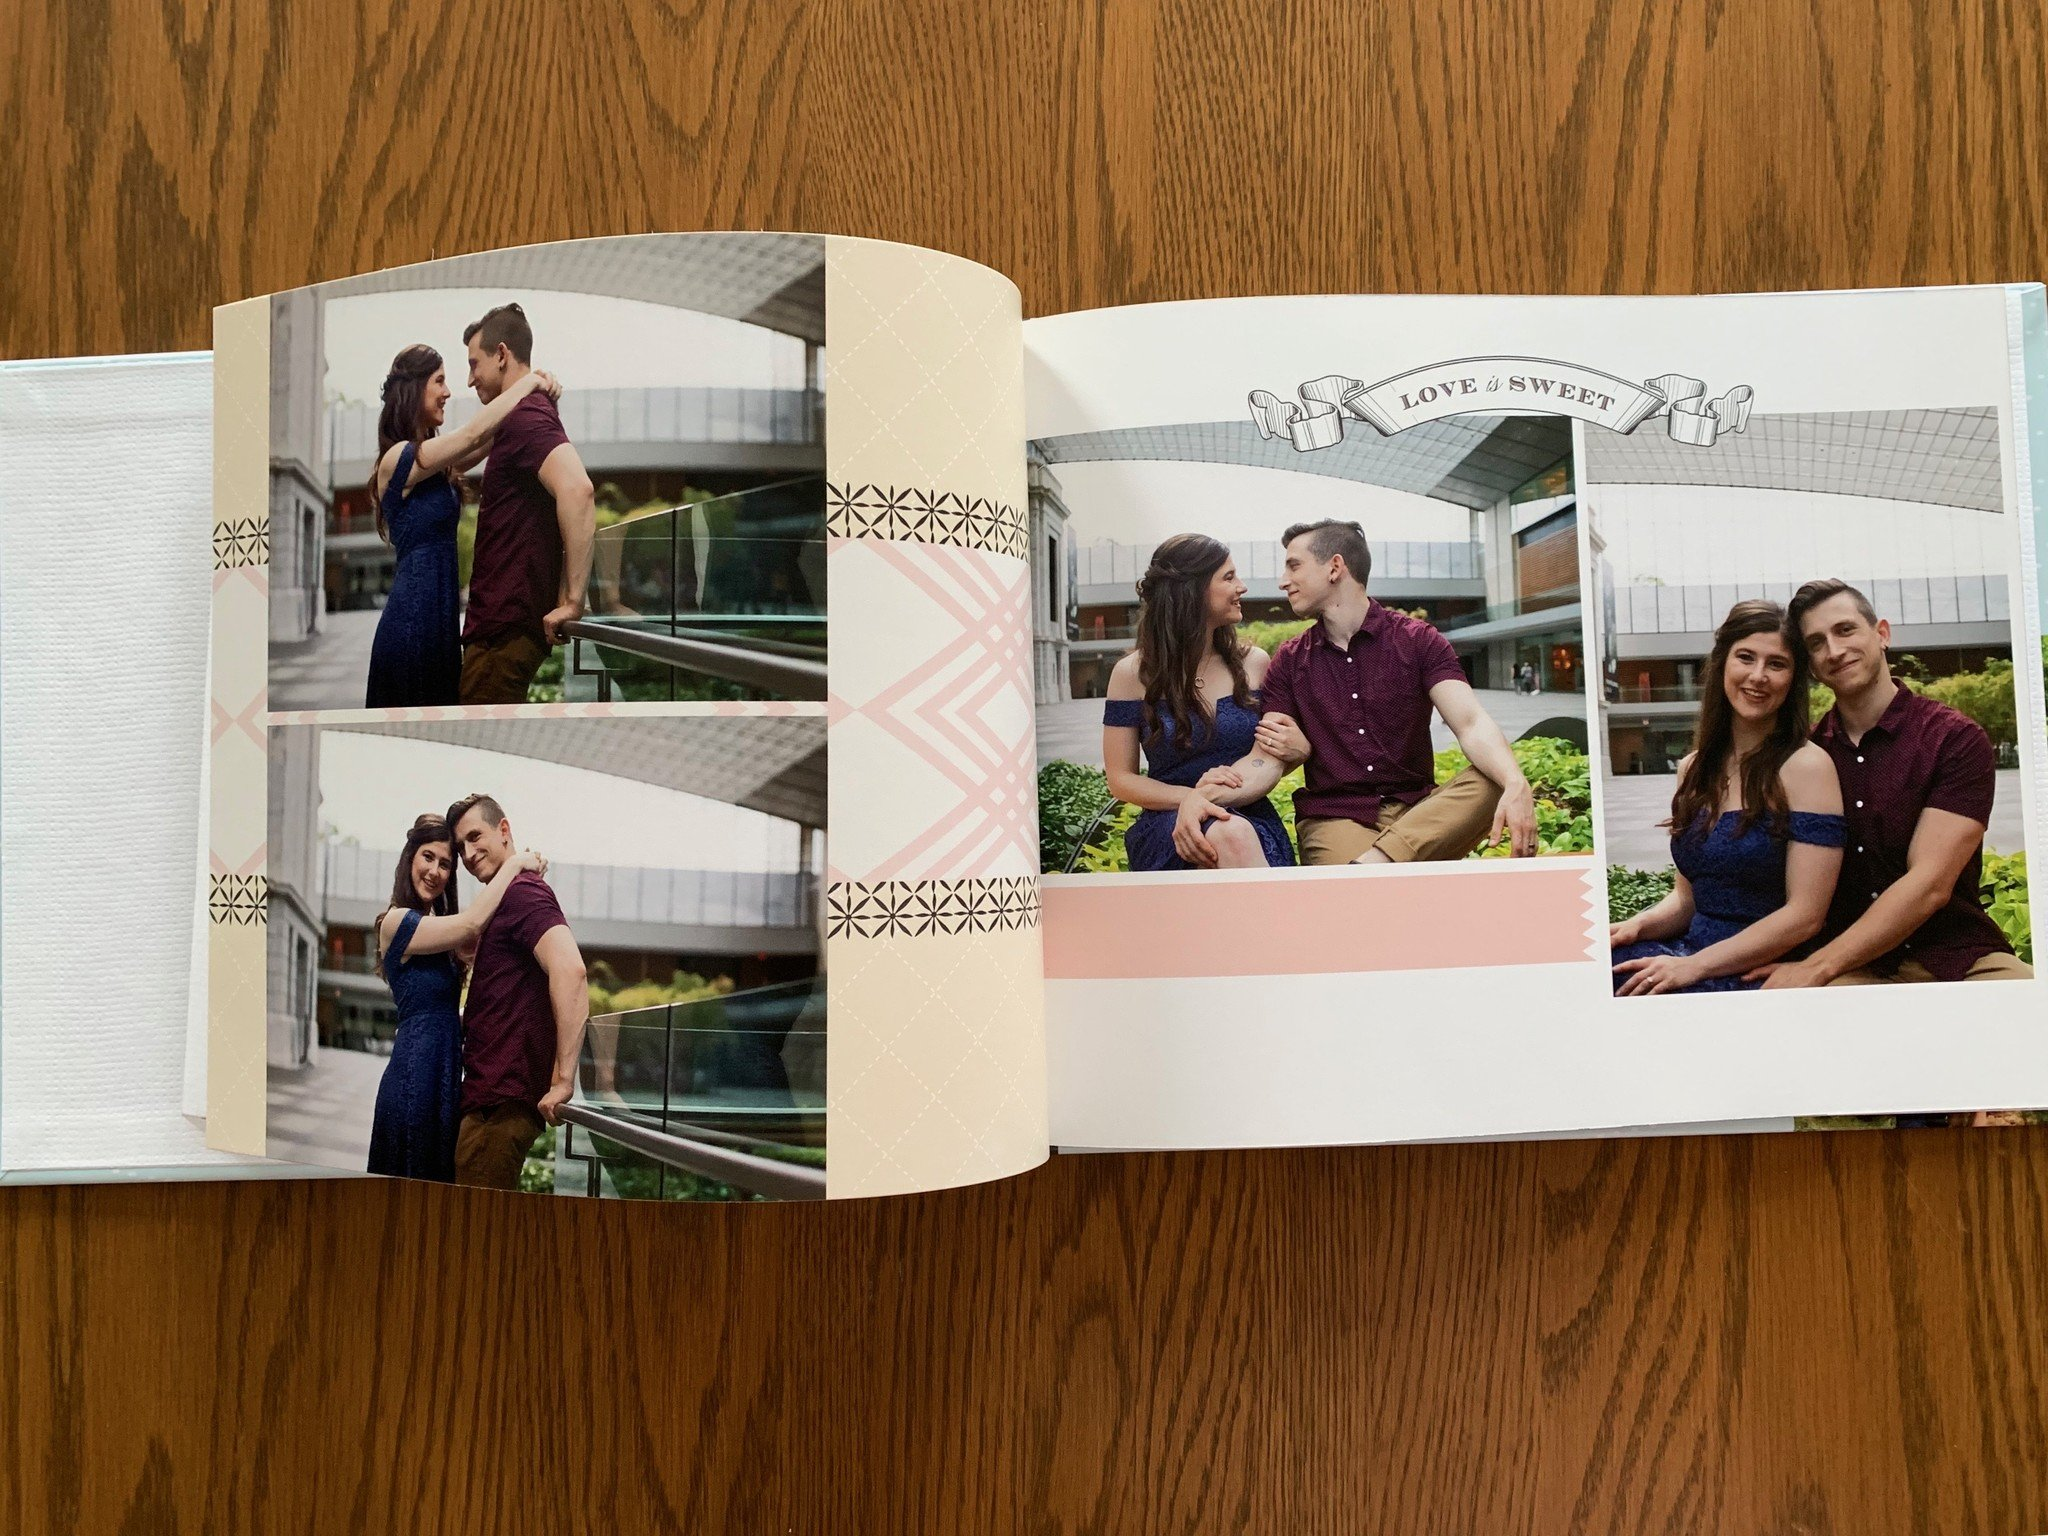 Shutterfly Photo Printing review: Quality, variety, and ...